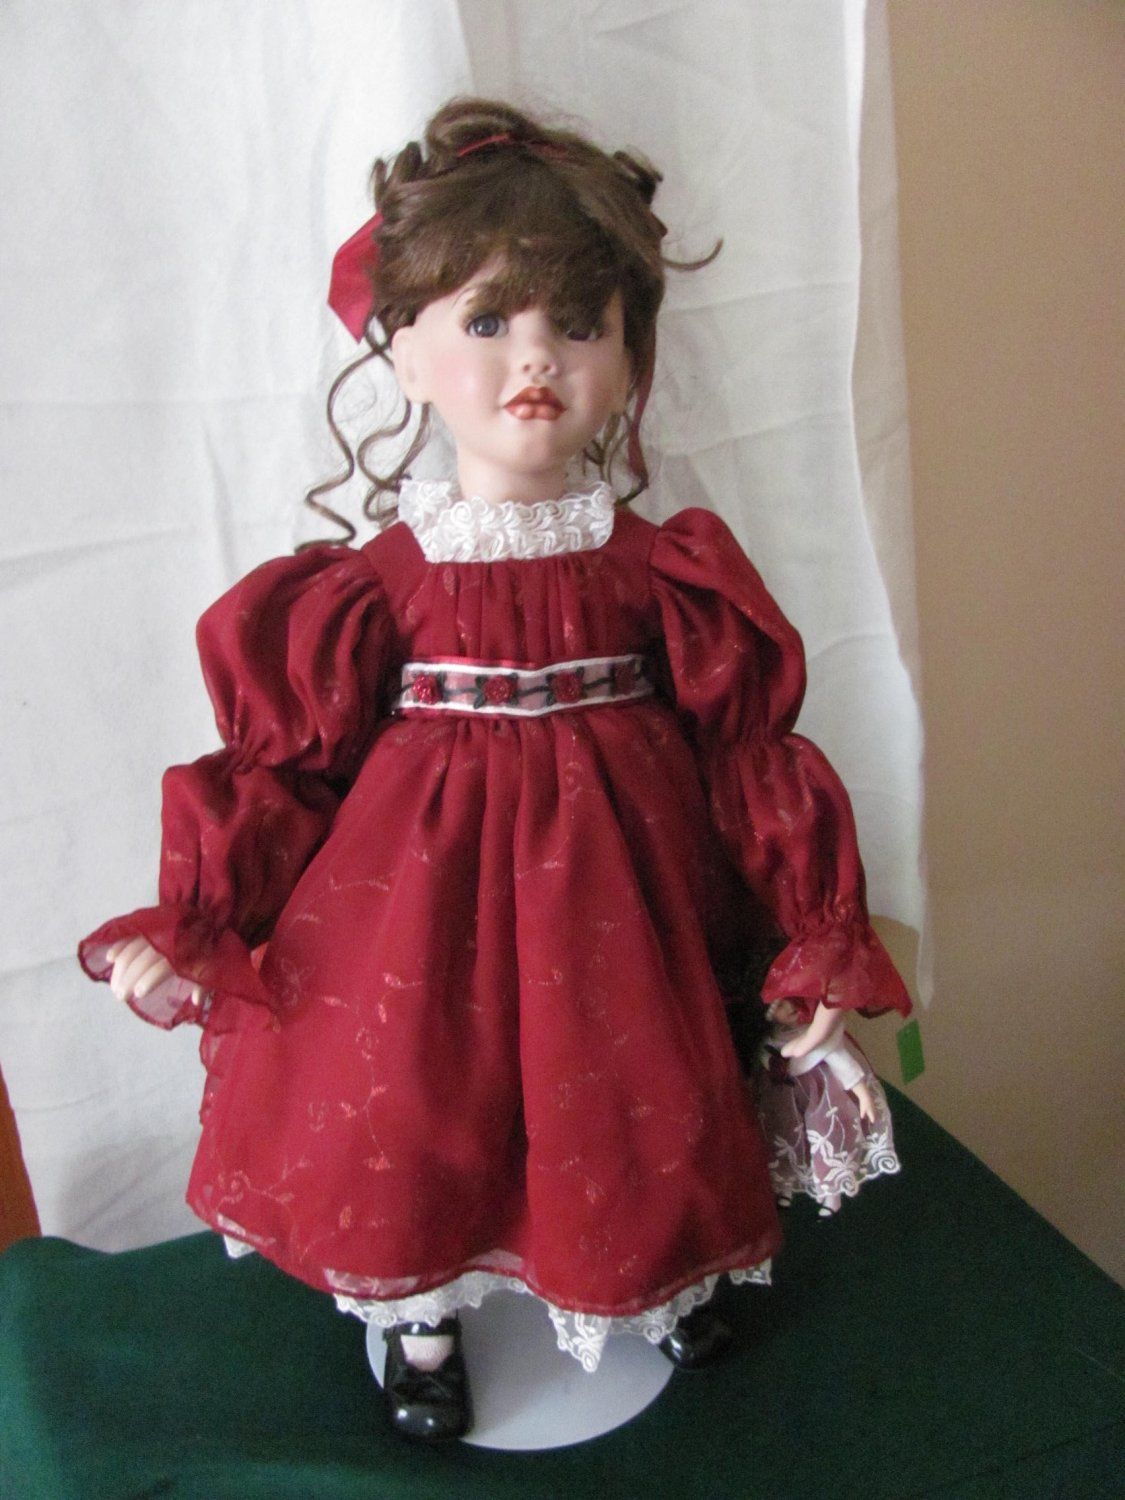 Marie Osmond Young Love Rose Porcelain Doll